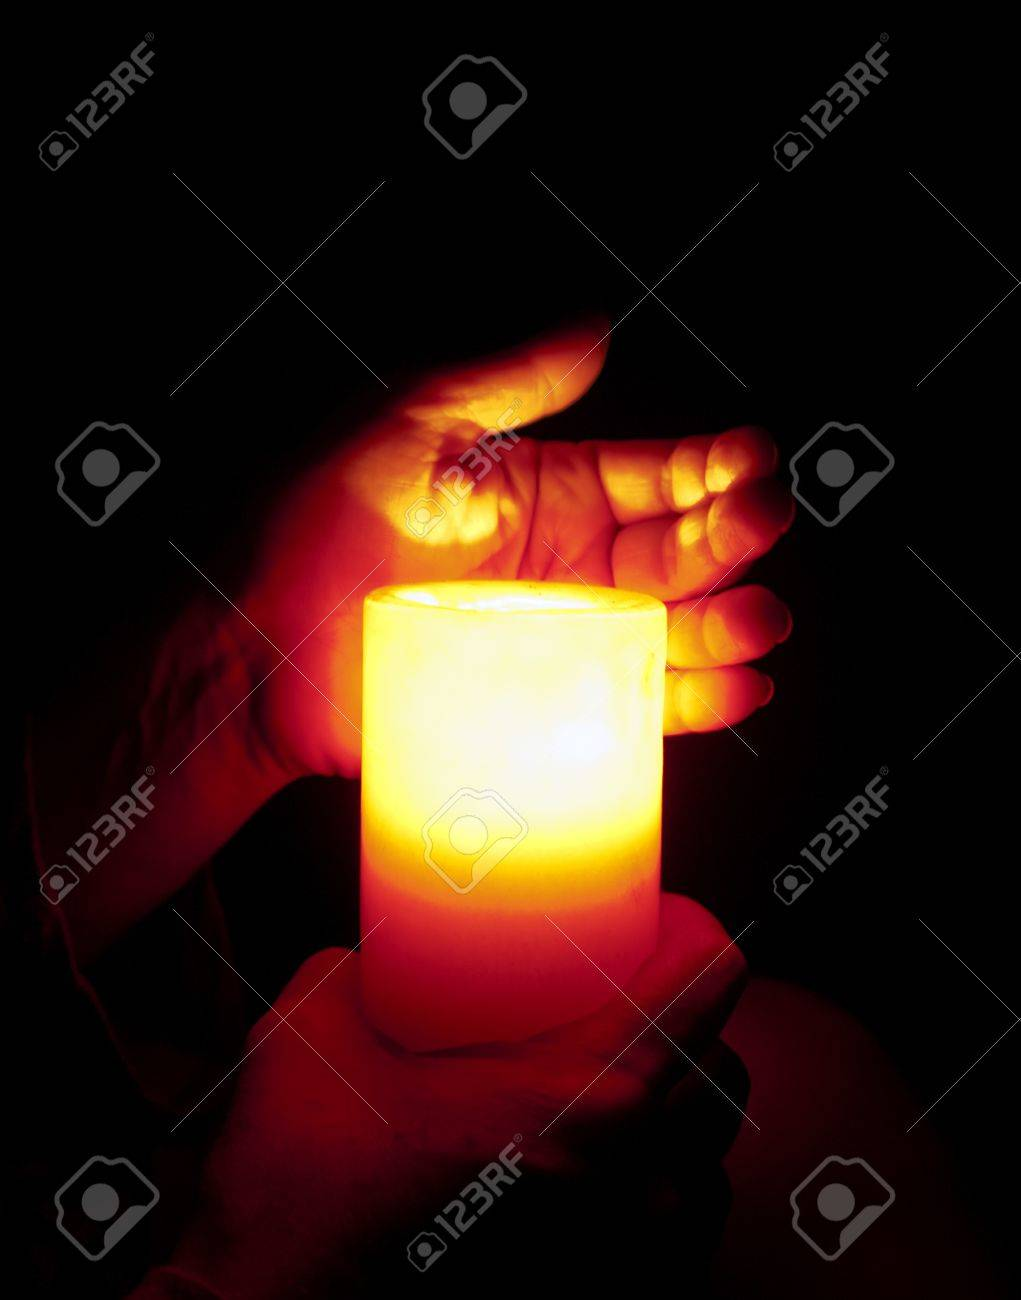 Hands Holding Burning Candle In The Dark Stock Photo, Picture And ... for Holding Candle In The Dark  181obs